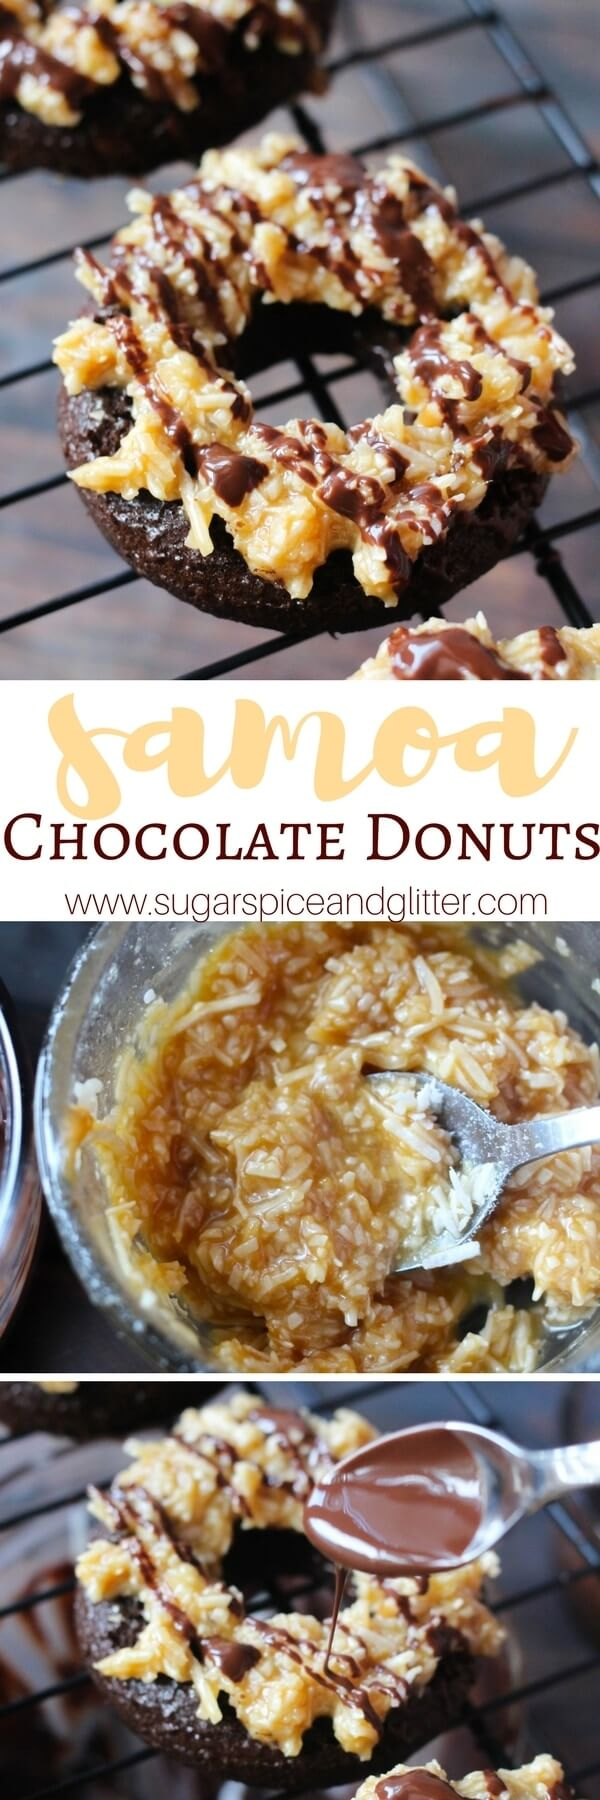 The best homemade donuts you will ever taste - these Samoa Chocolate Donuts are topped with crunchy, sweet caramel-coconut topping and drizzled with coconut oil-spiked chocolate for a delicious dessert that's even better than the original Samoas cookies